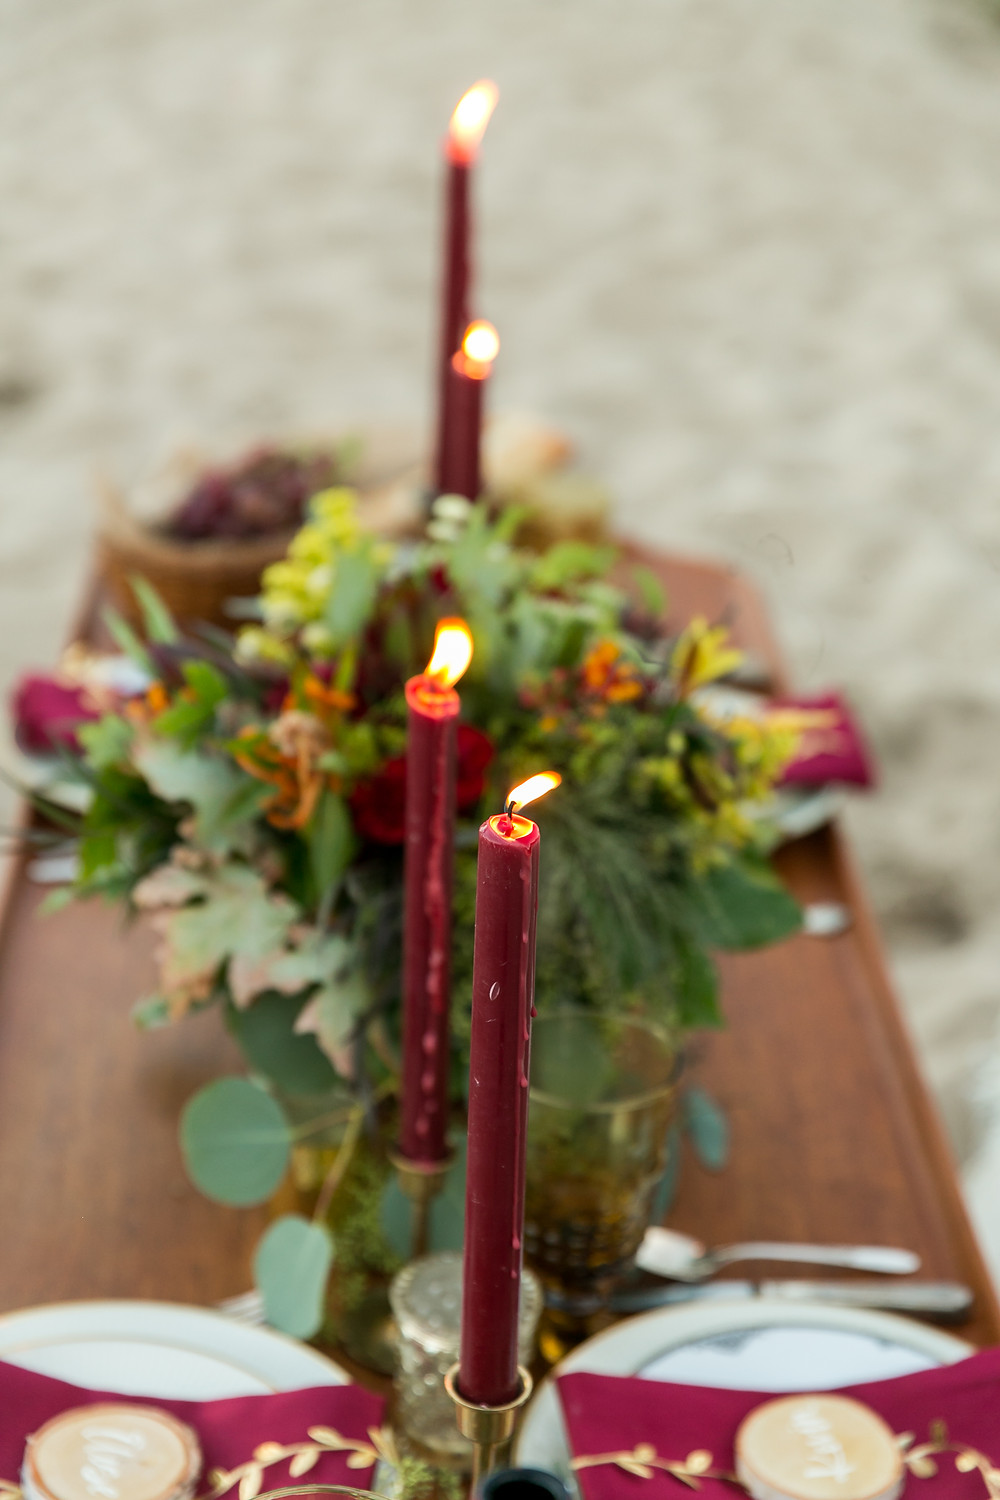 Candles lit on the tiny farm table add charm to beach picnic